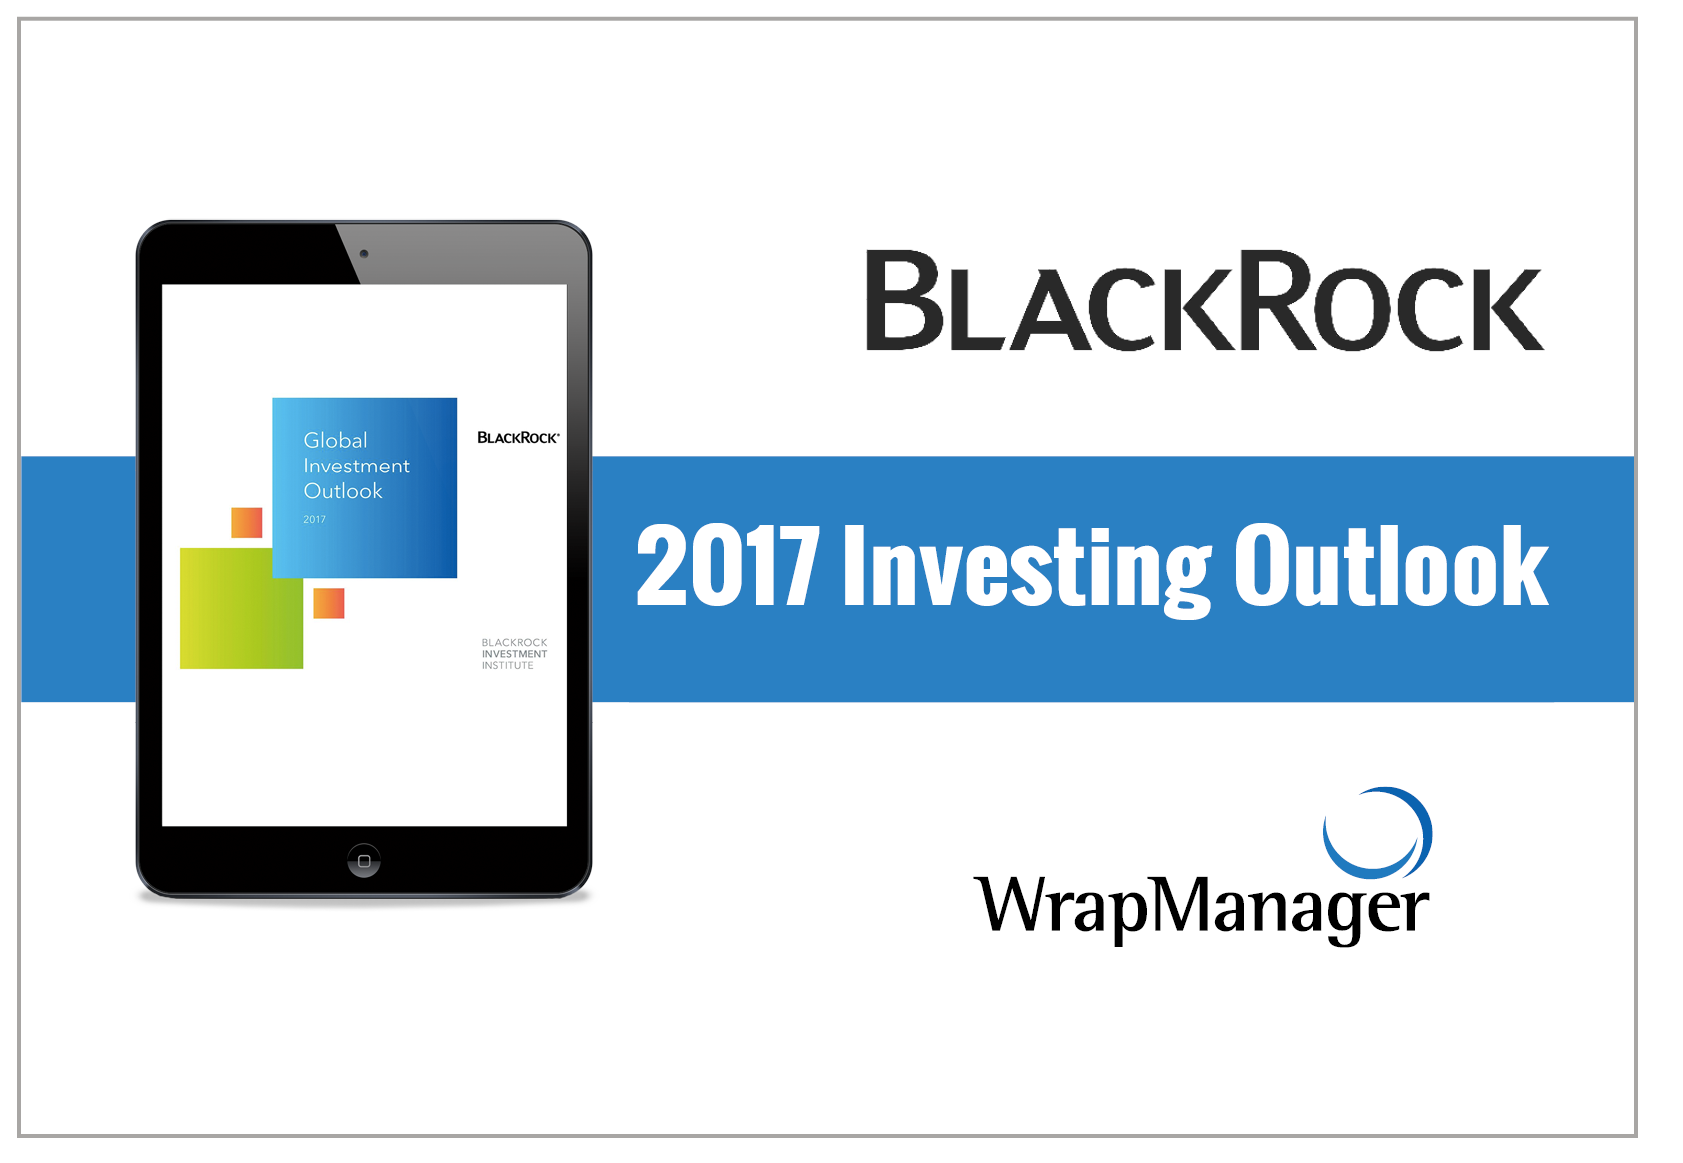 BlackRock 2017 Investing Outlook